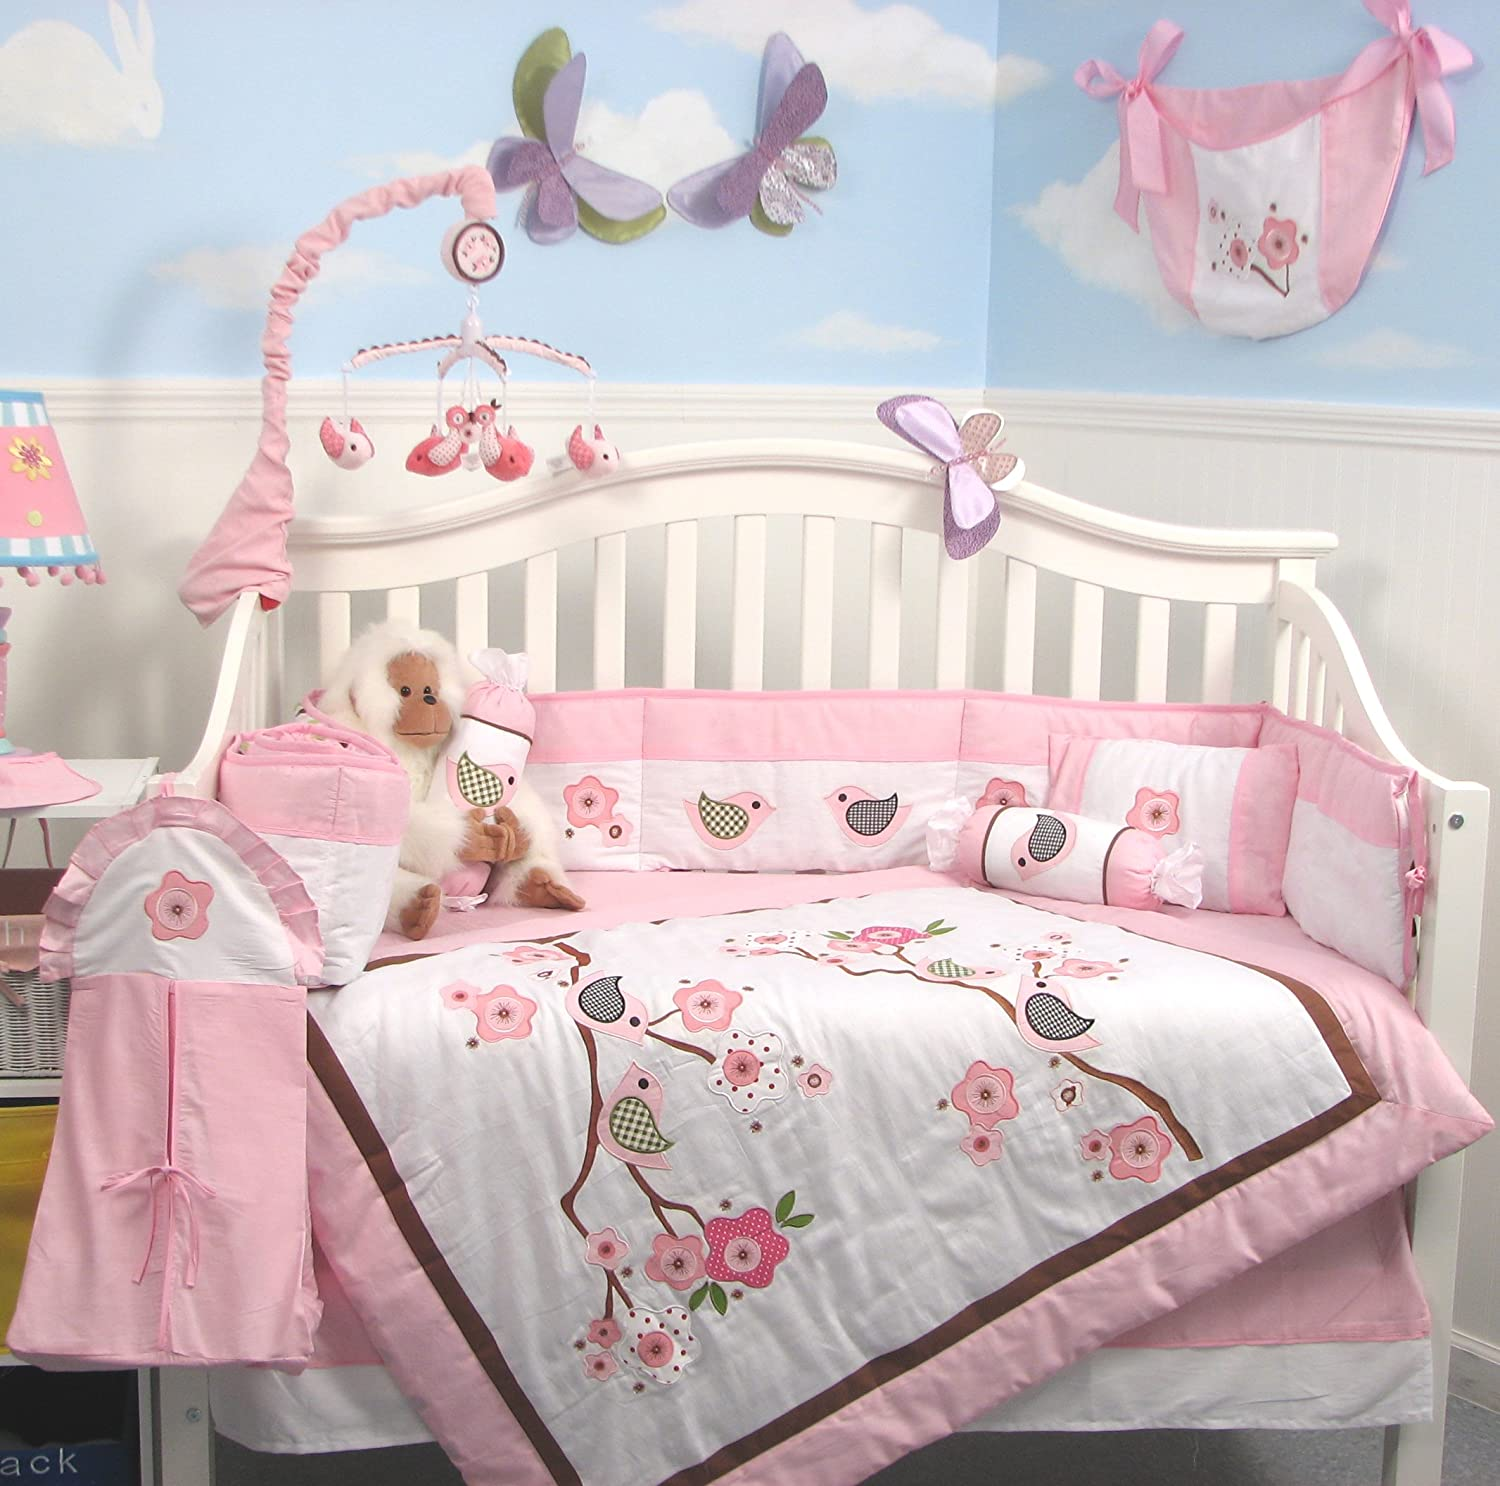 l sheets baby crib for bedding girls girl bed sets larger view set